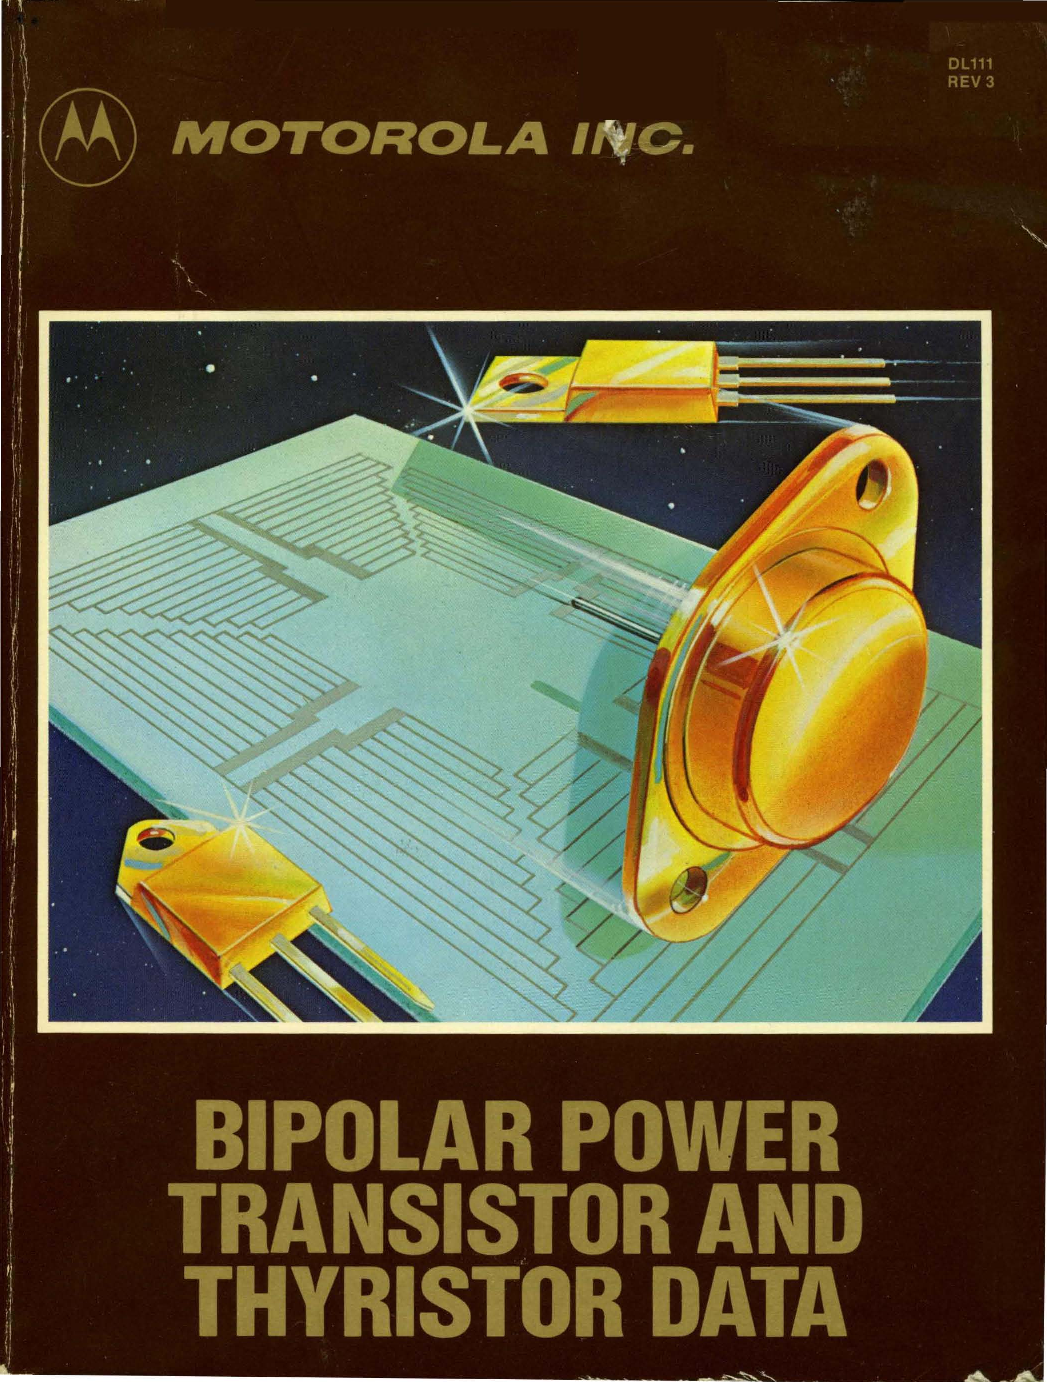 1984 Motorola Bipolar Power Transistor And Thyristor Data Section 1 Hv 317 Mosfet Voltage Regulator Circuits Images Frompo